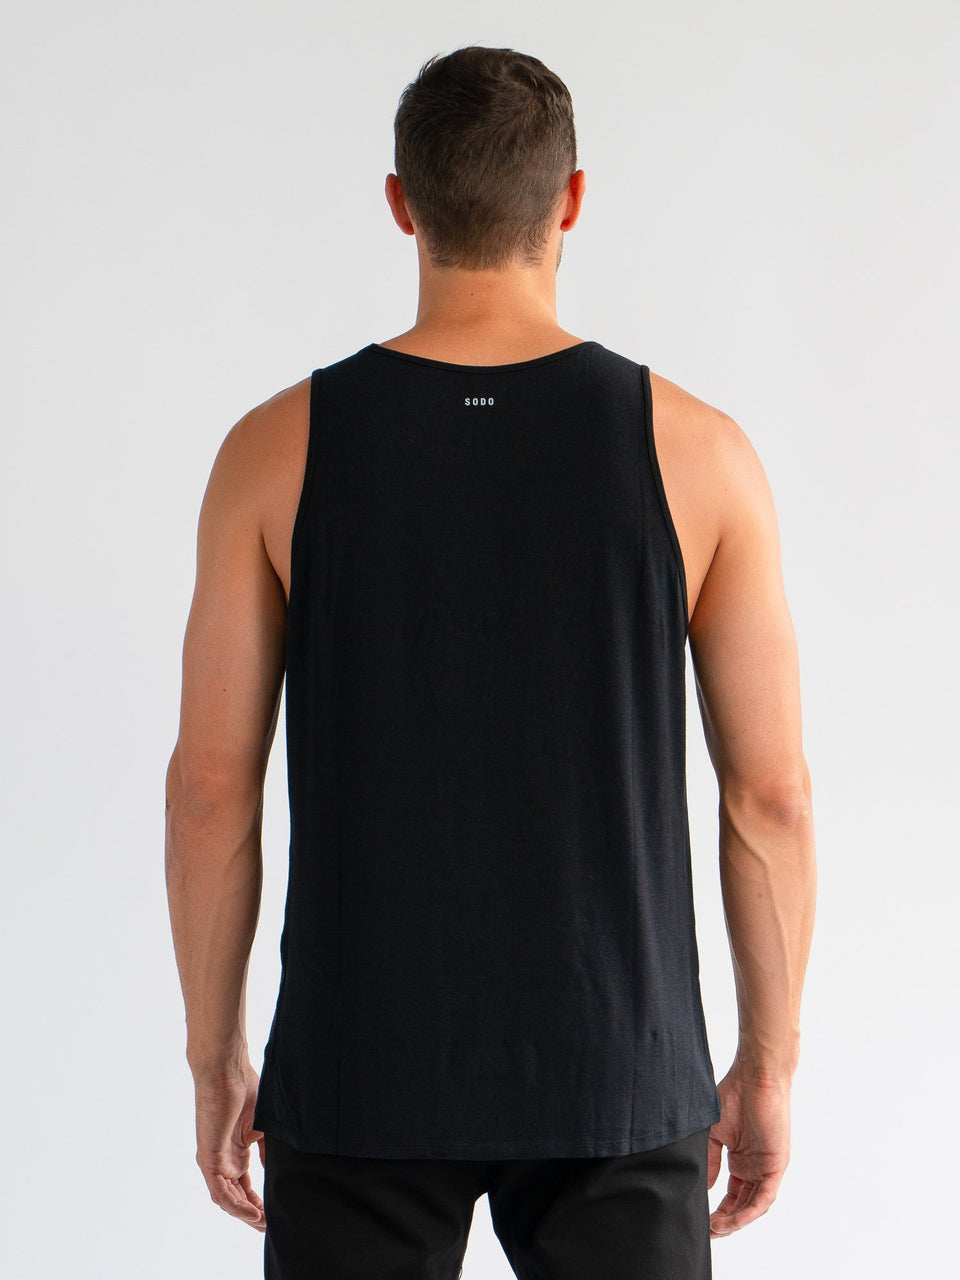 FIBER TECH TANK - SODO Apparel - SHIRTS